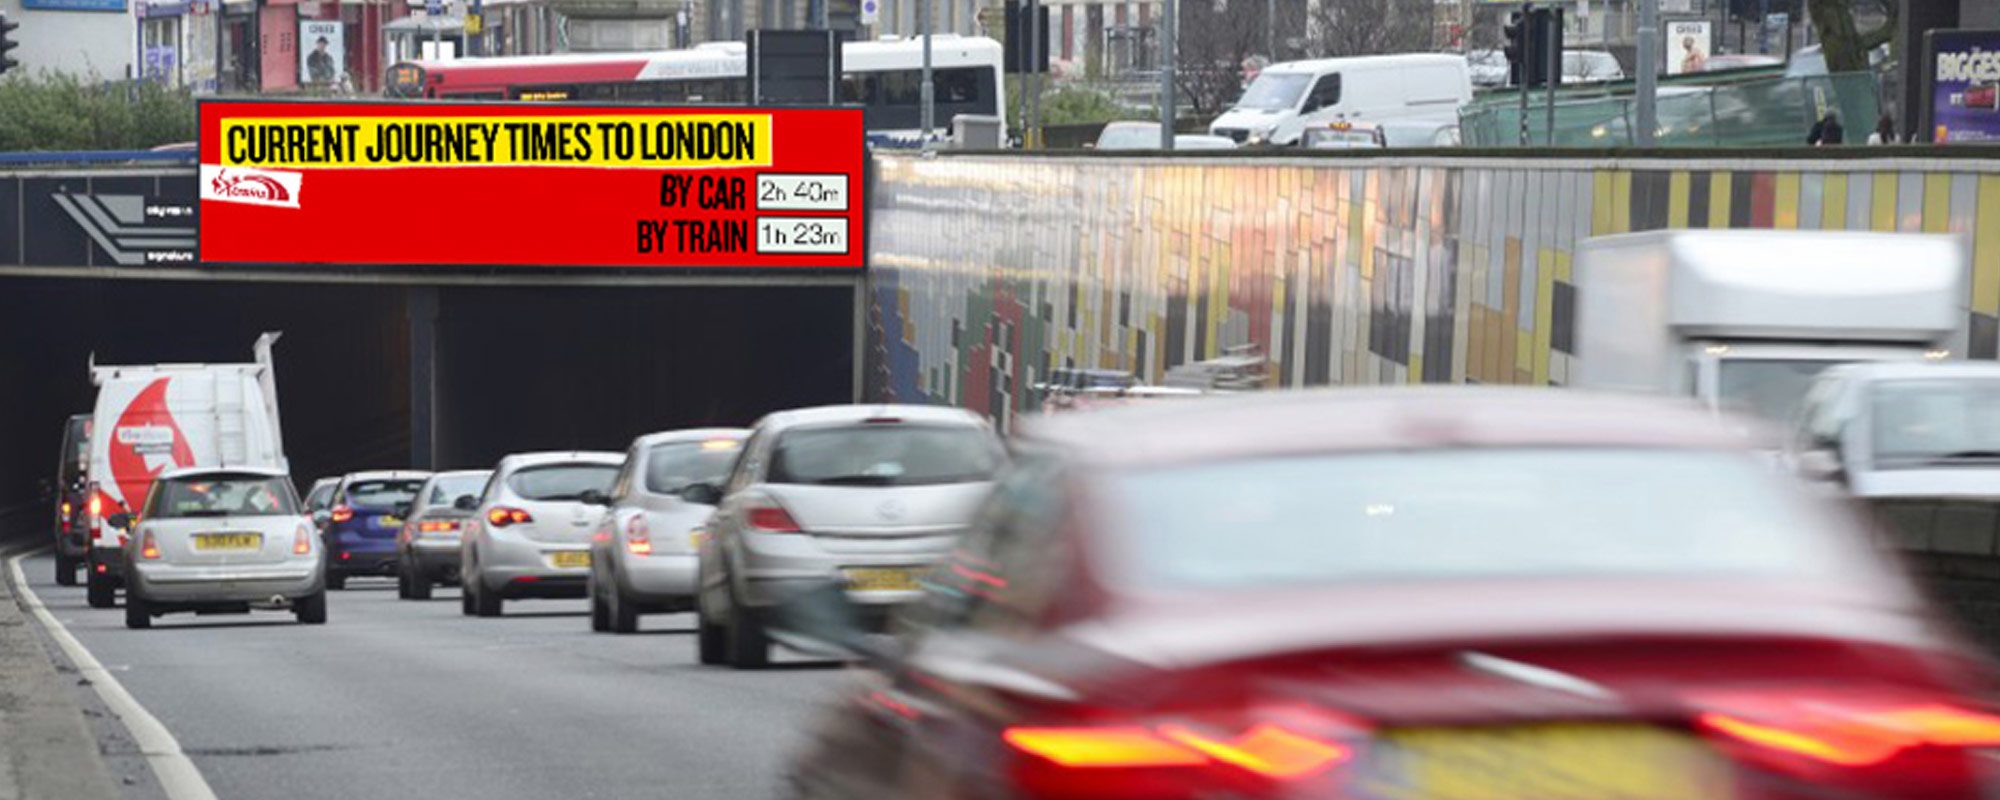 Virgin Trains' DOOH Campaign Targets Drivers with Innovative Data-Driven Roadside Alerts